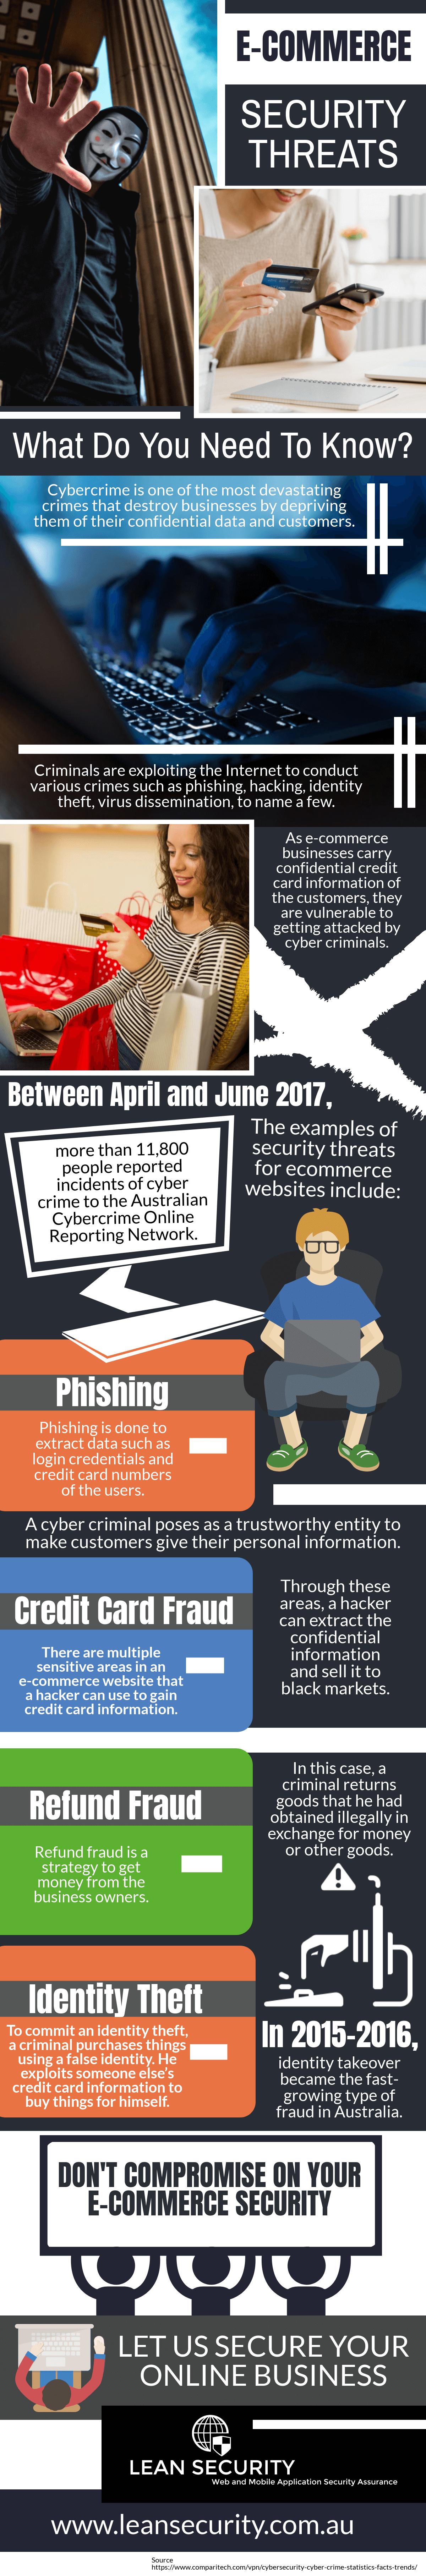 E-Commerce Security Threat -What Do You Need to Know.png